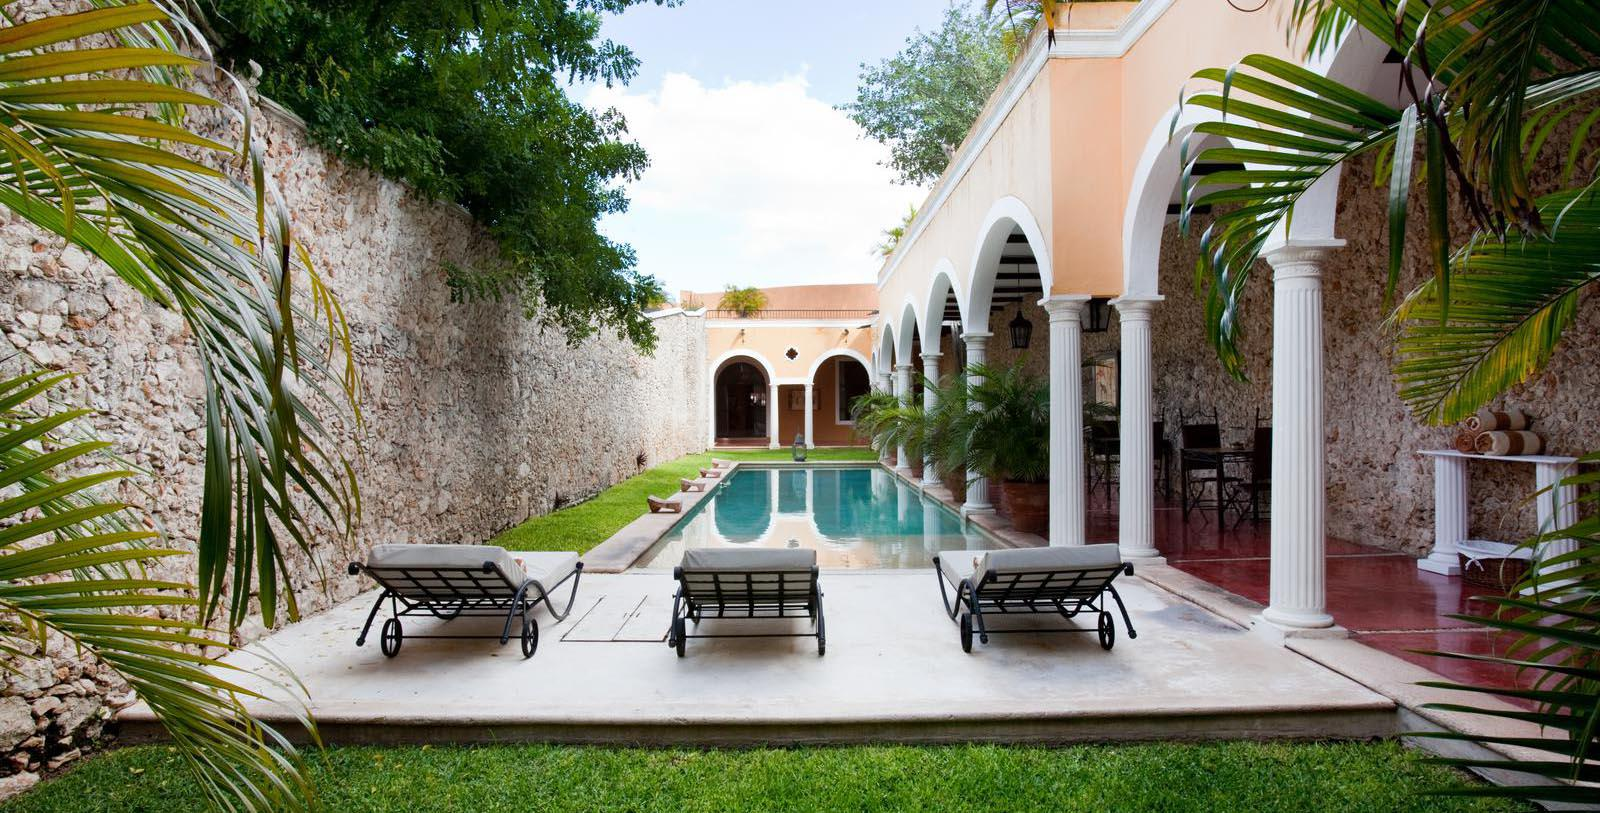 Image of Outdoor Pool Courtyard, Hotel Hacienda Merida, Mexico, 1700s, Member of Historic Hotels Worldwide, Explore